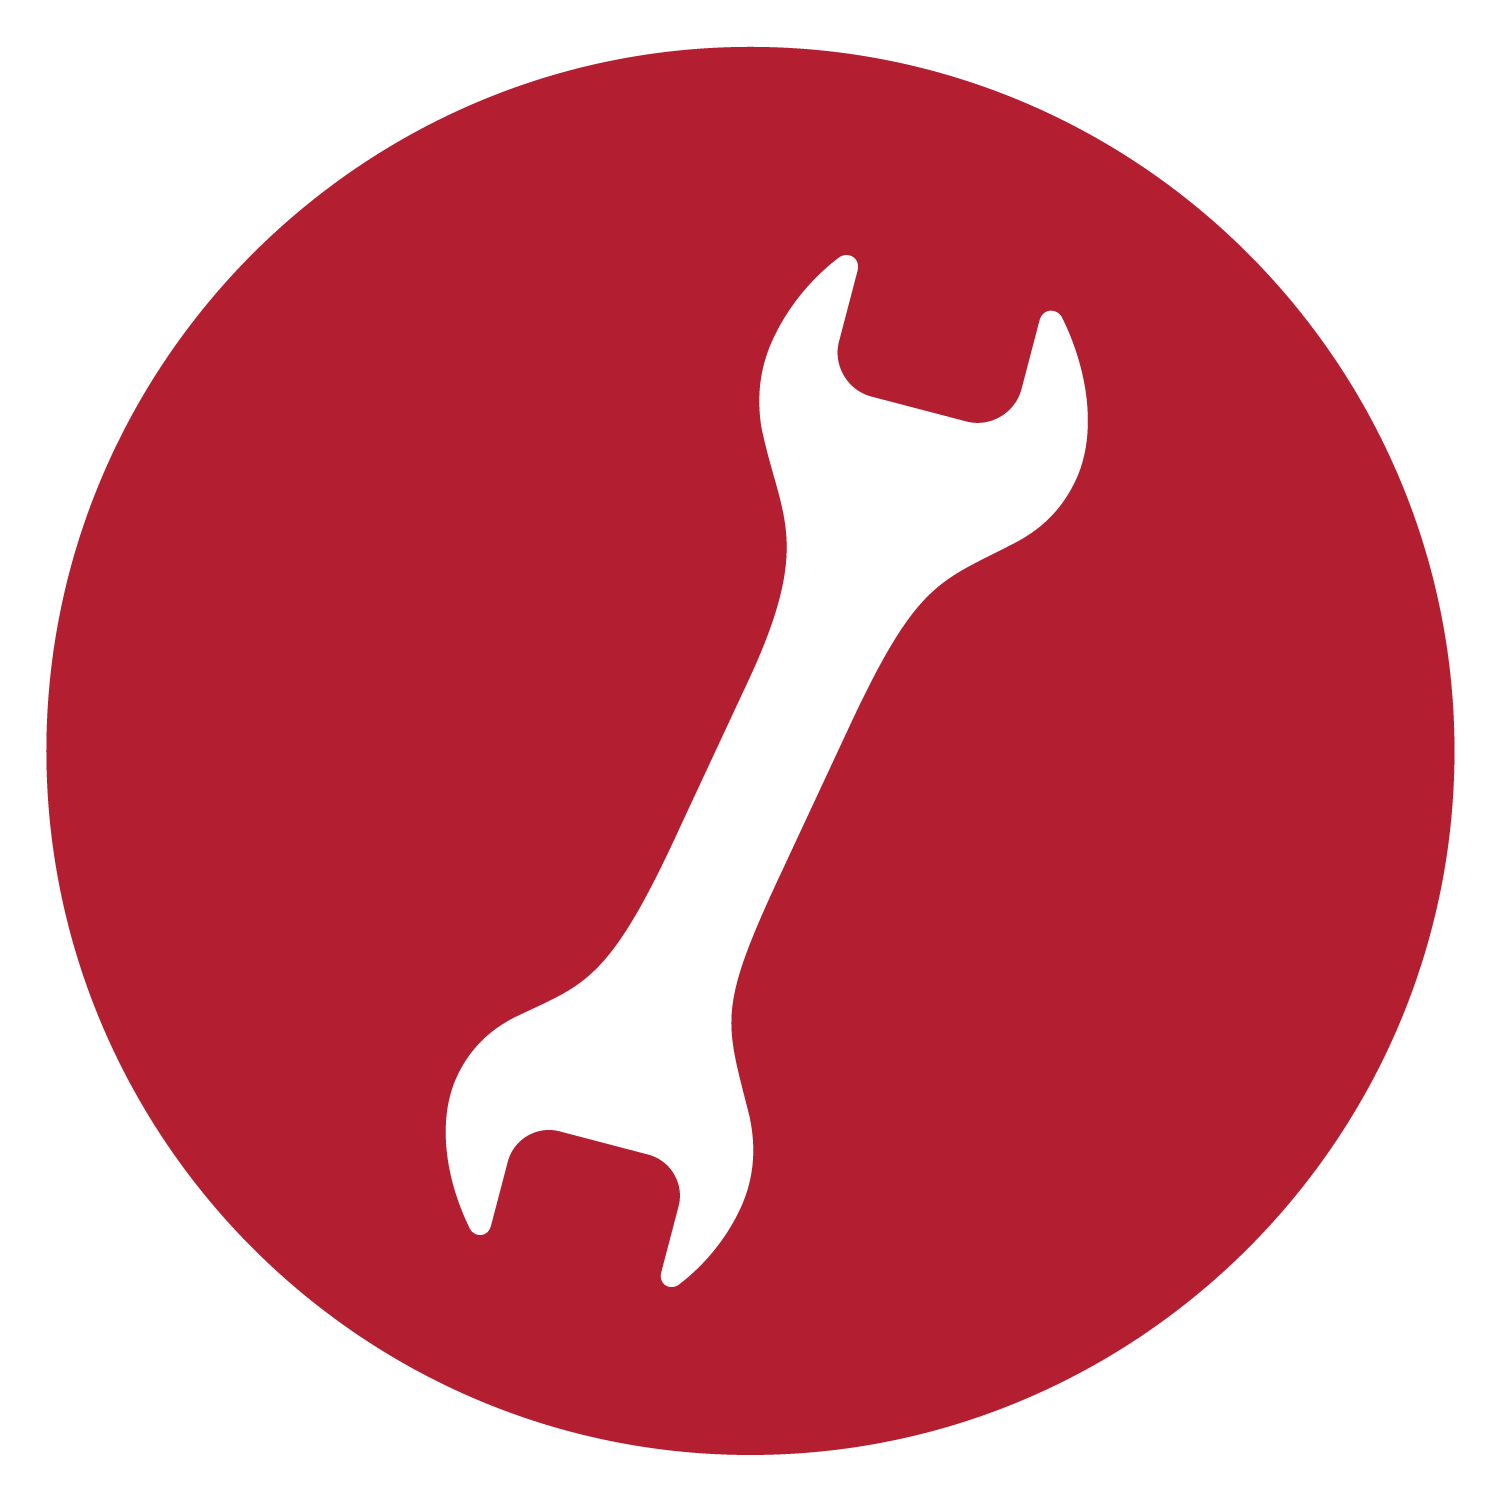 Wrench icon png. Download free icons and